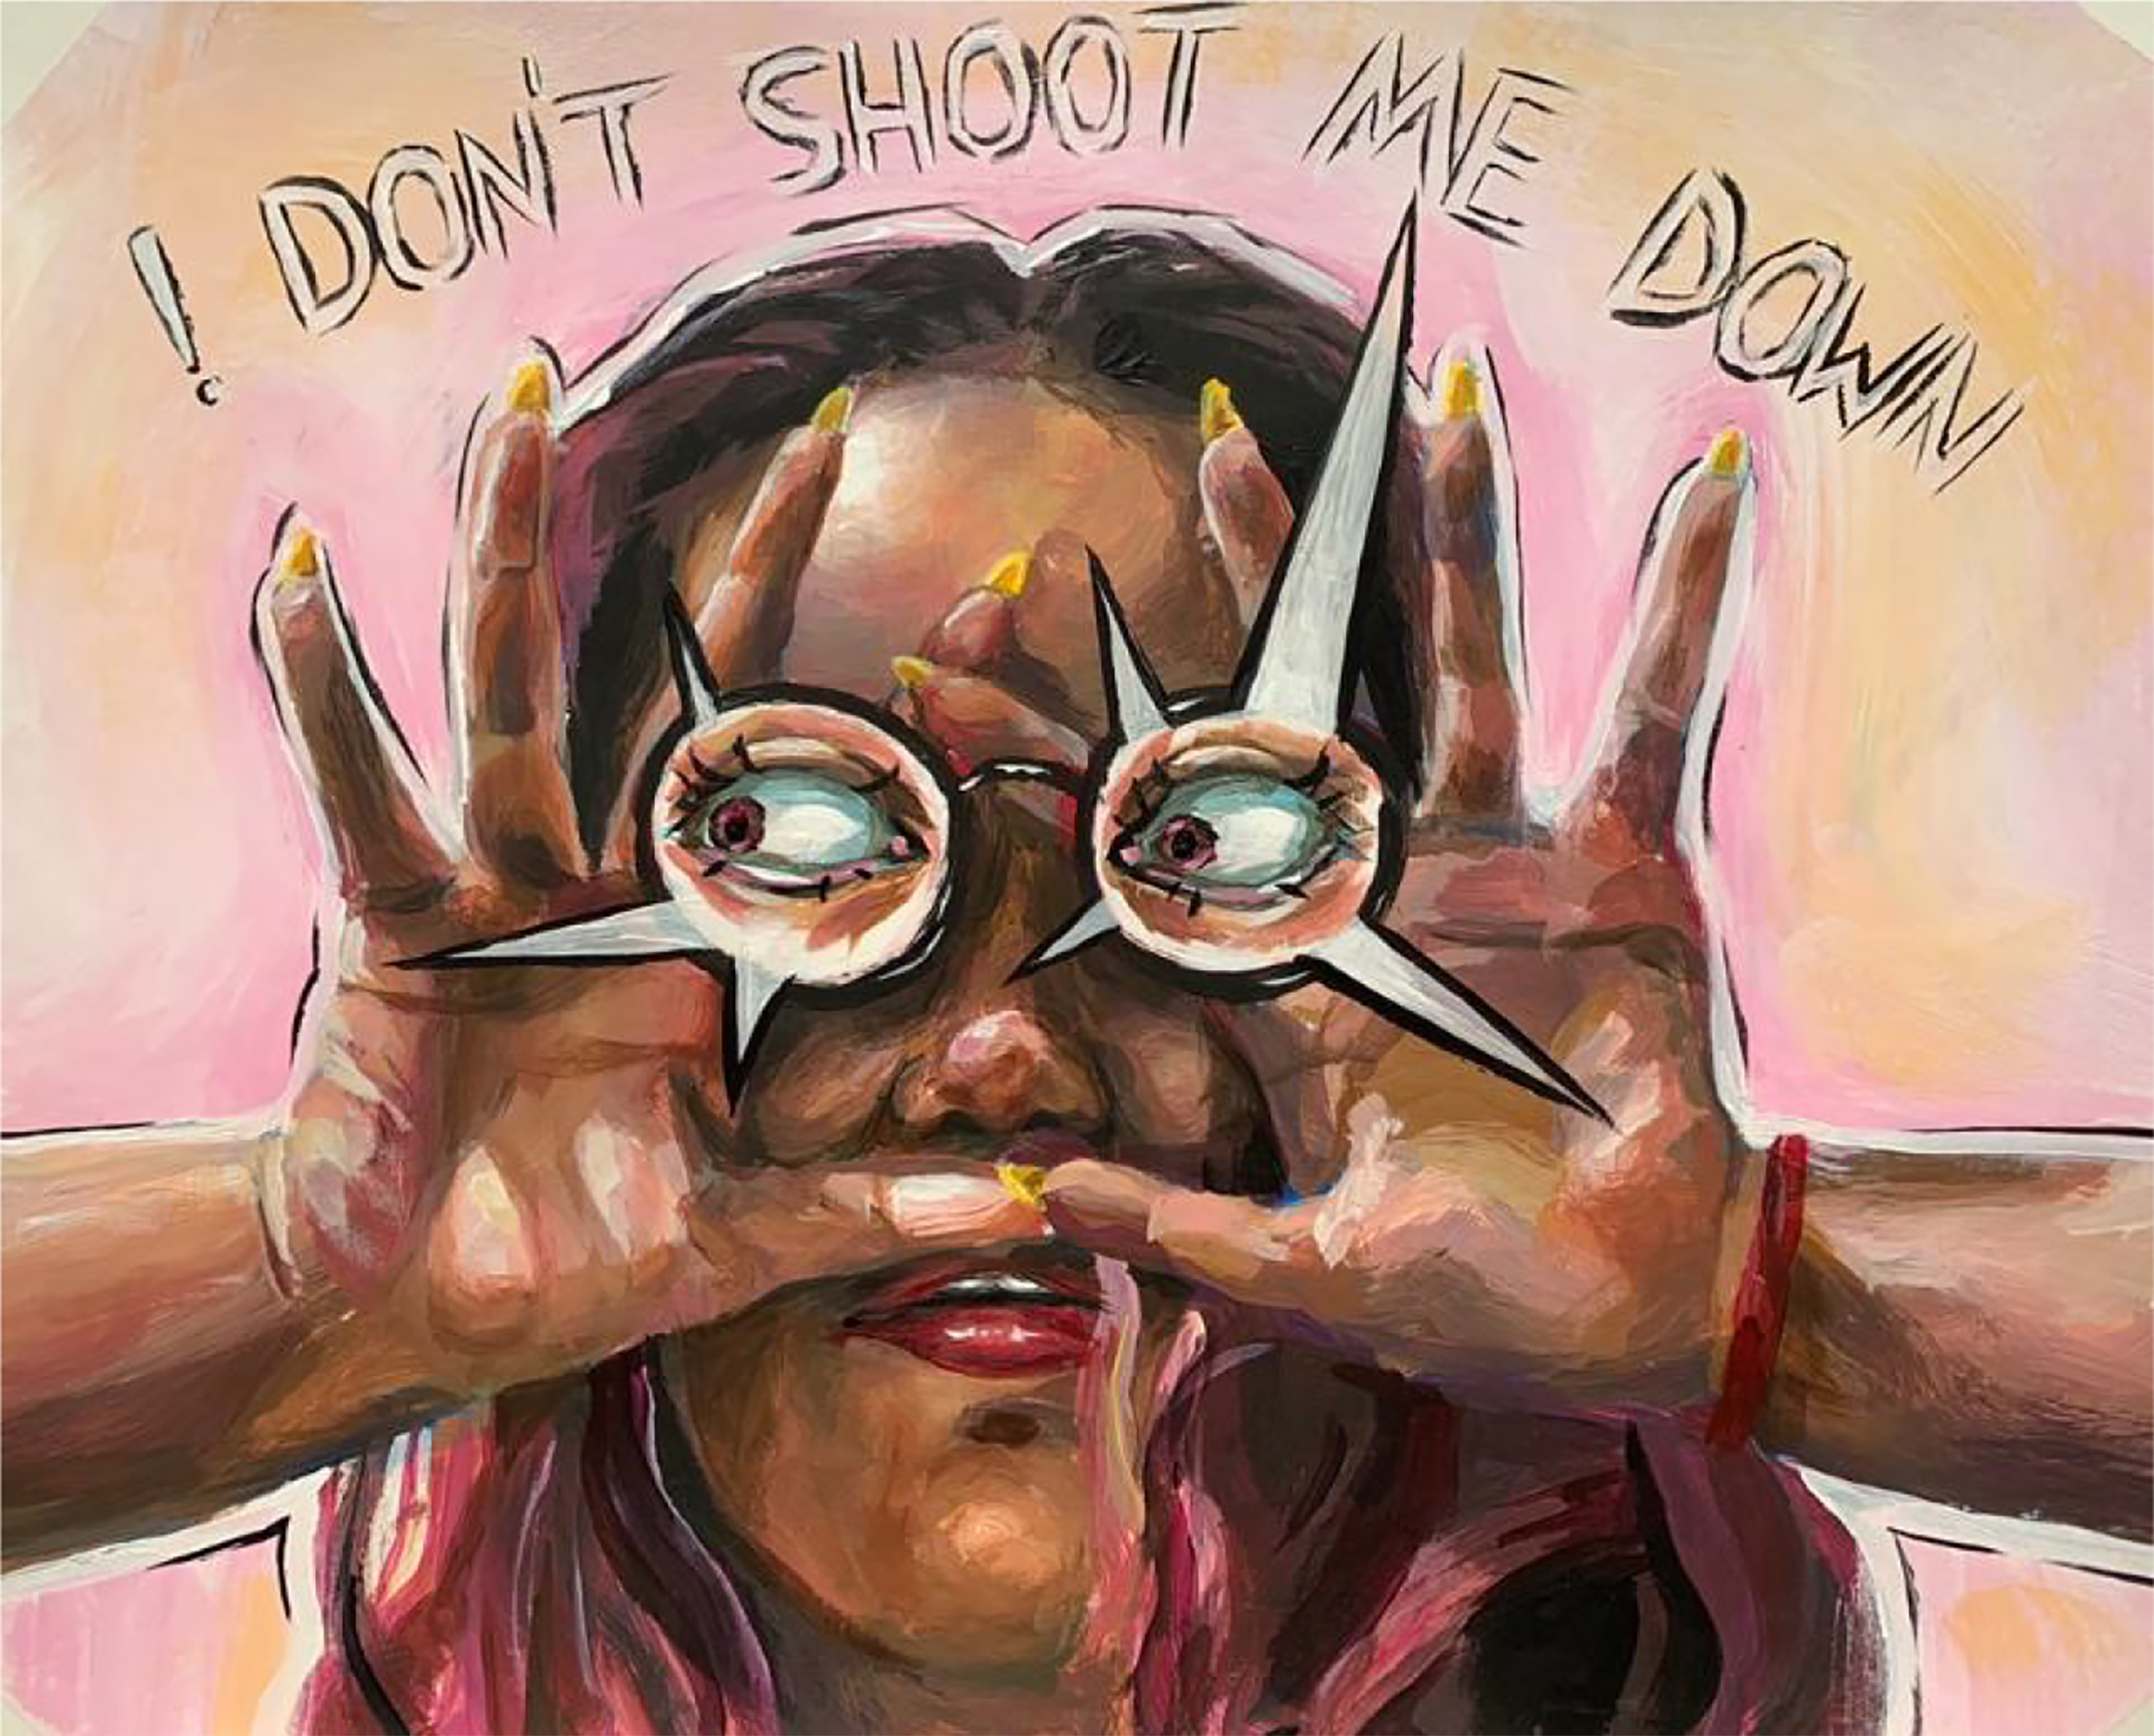 "painting of a young woman, from the neck up, with her hands in front of her face and eyes on her hands with the words ""don't shoot me down"" above her head"